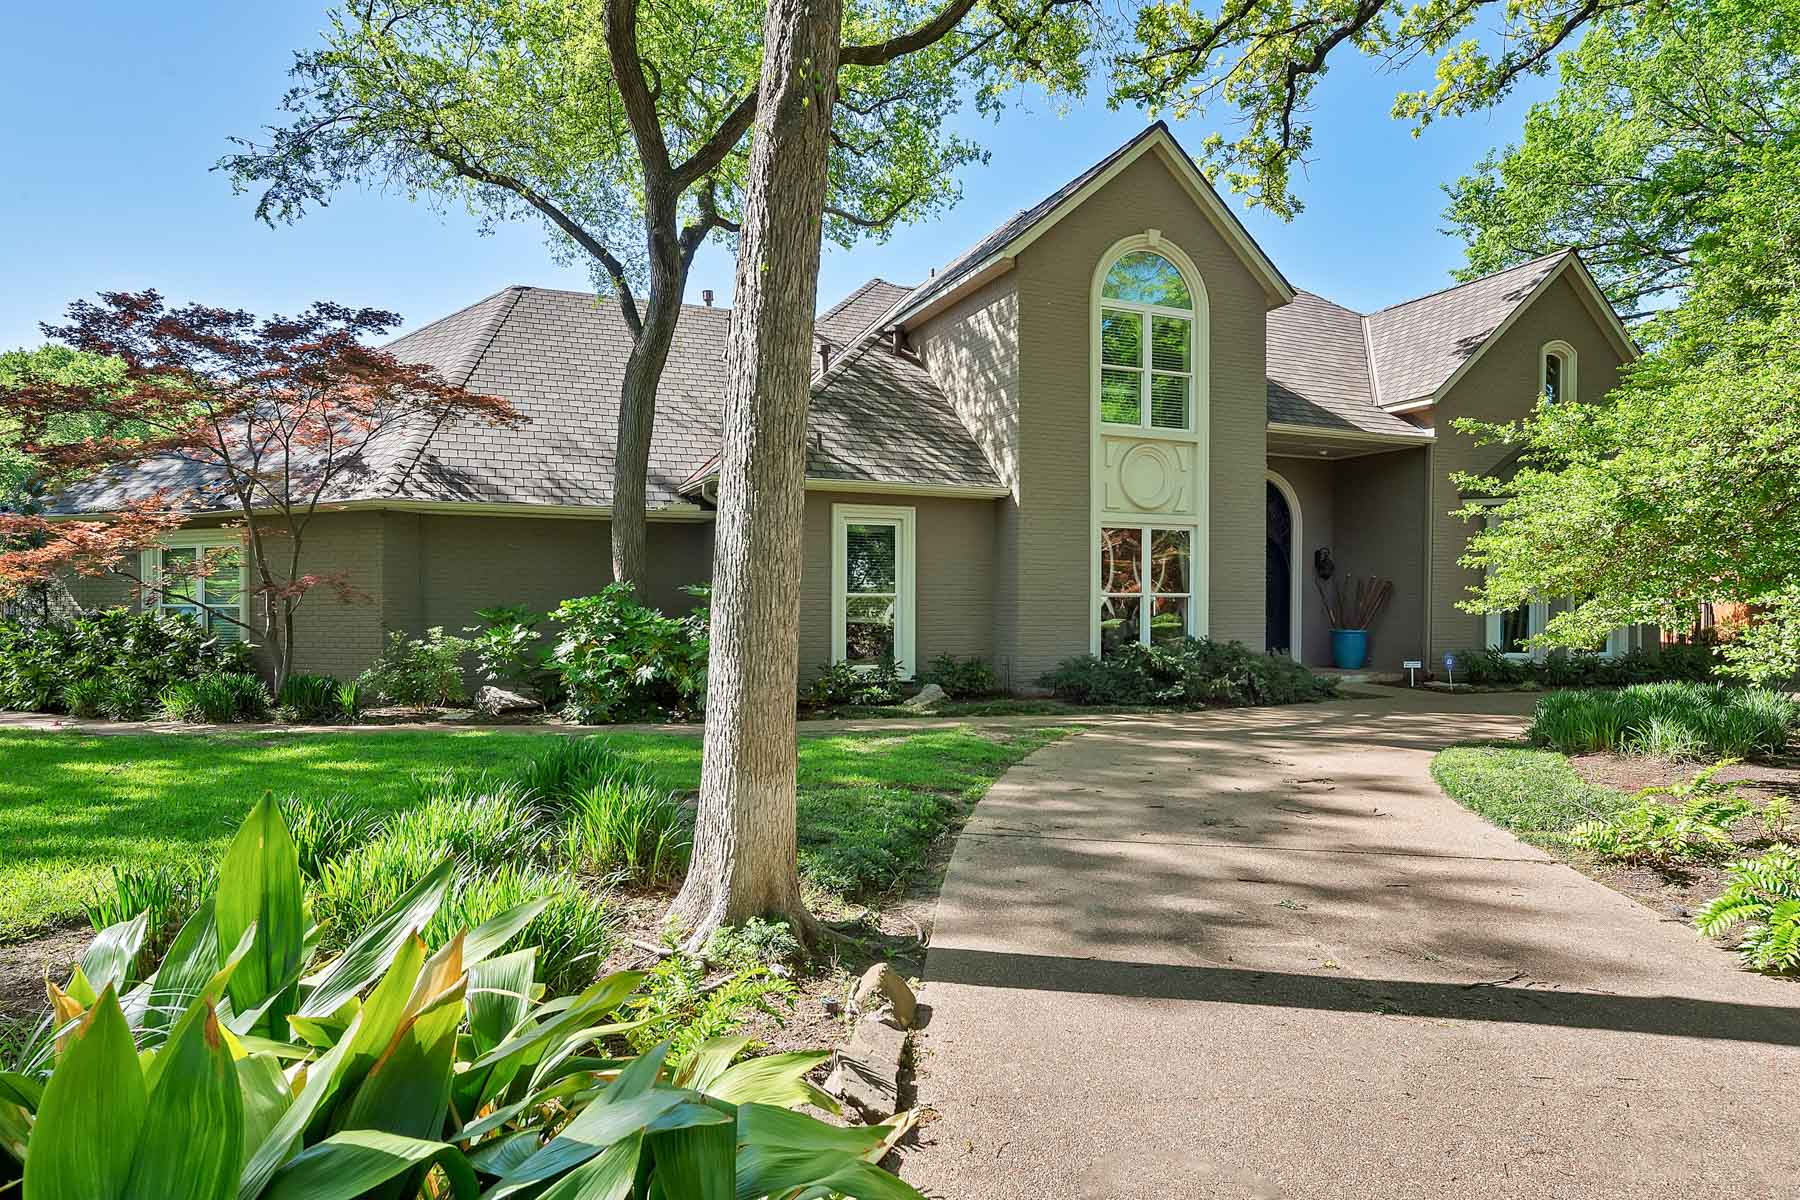 Casa Unifamiliar por un Venta en 4851 Moss Hollow Court, Fort Worth 4851 Moss Hollow Ct Fort Worth, Texas, 76109 Estados Unidos